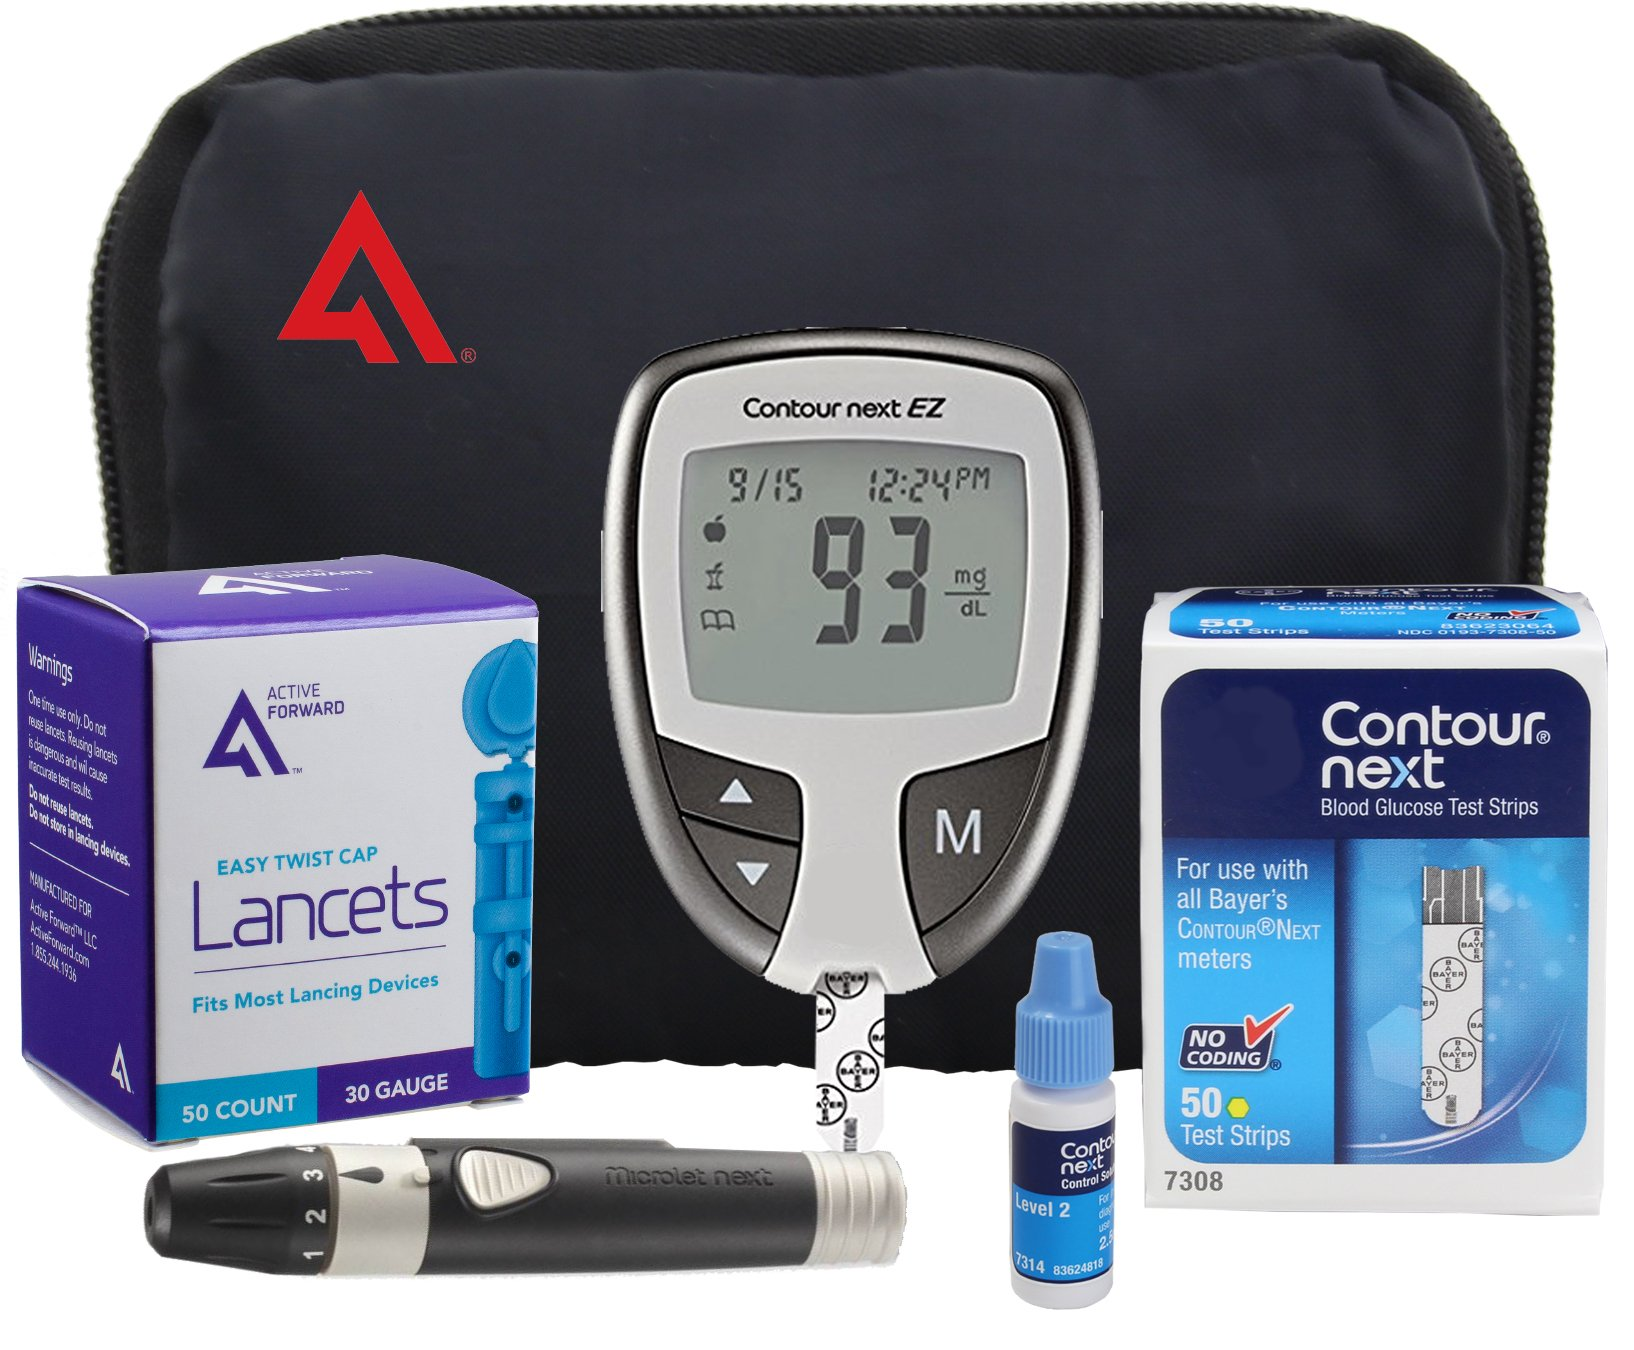 AF Contour NEXT EZ Diabetes Testing Kit | Contour NEXT EZ Blood Glucose Meter, 50 Contour NEXT Blood Glucose Test Strips, 50 Lancets, Lancing Device, Control Solution, Log Book, User Manuals and Pouch by Active Forward